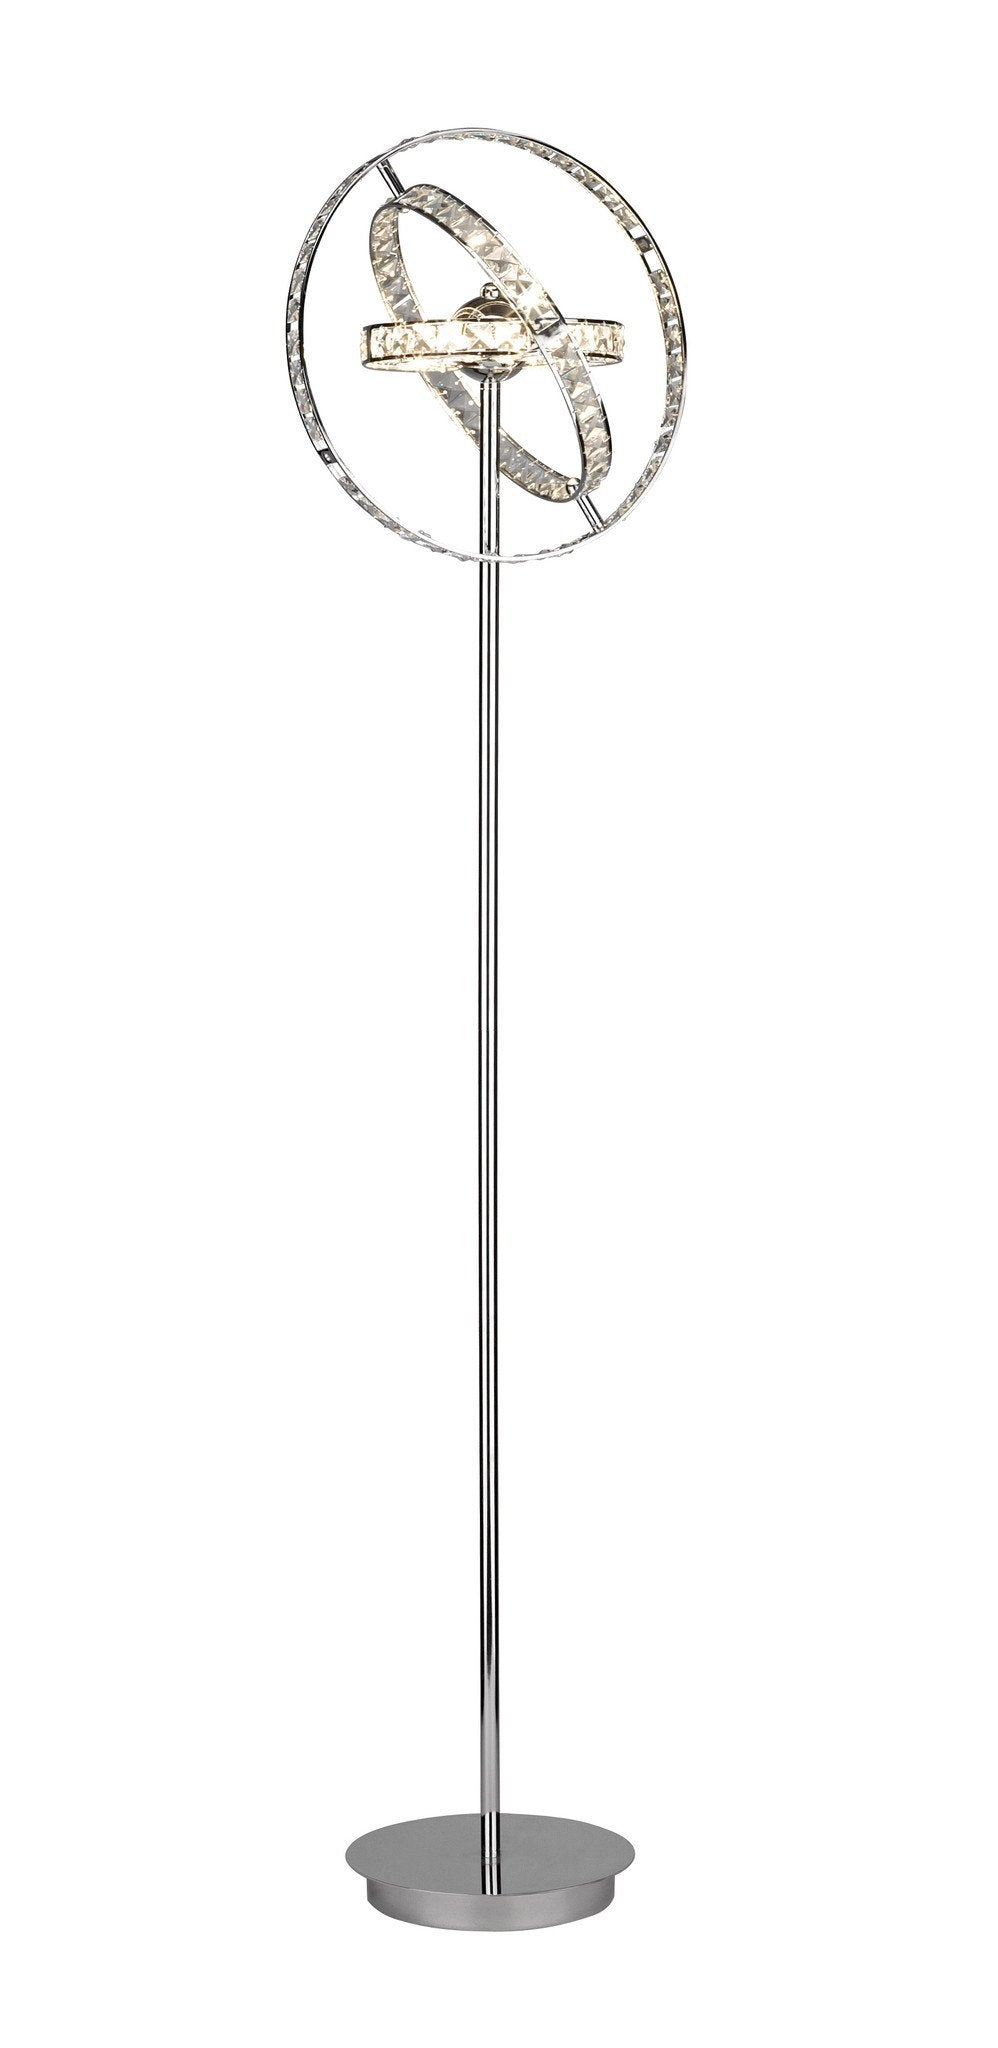 Eternity Chrome Floor Lamp - London Lighting - 1